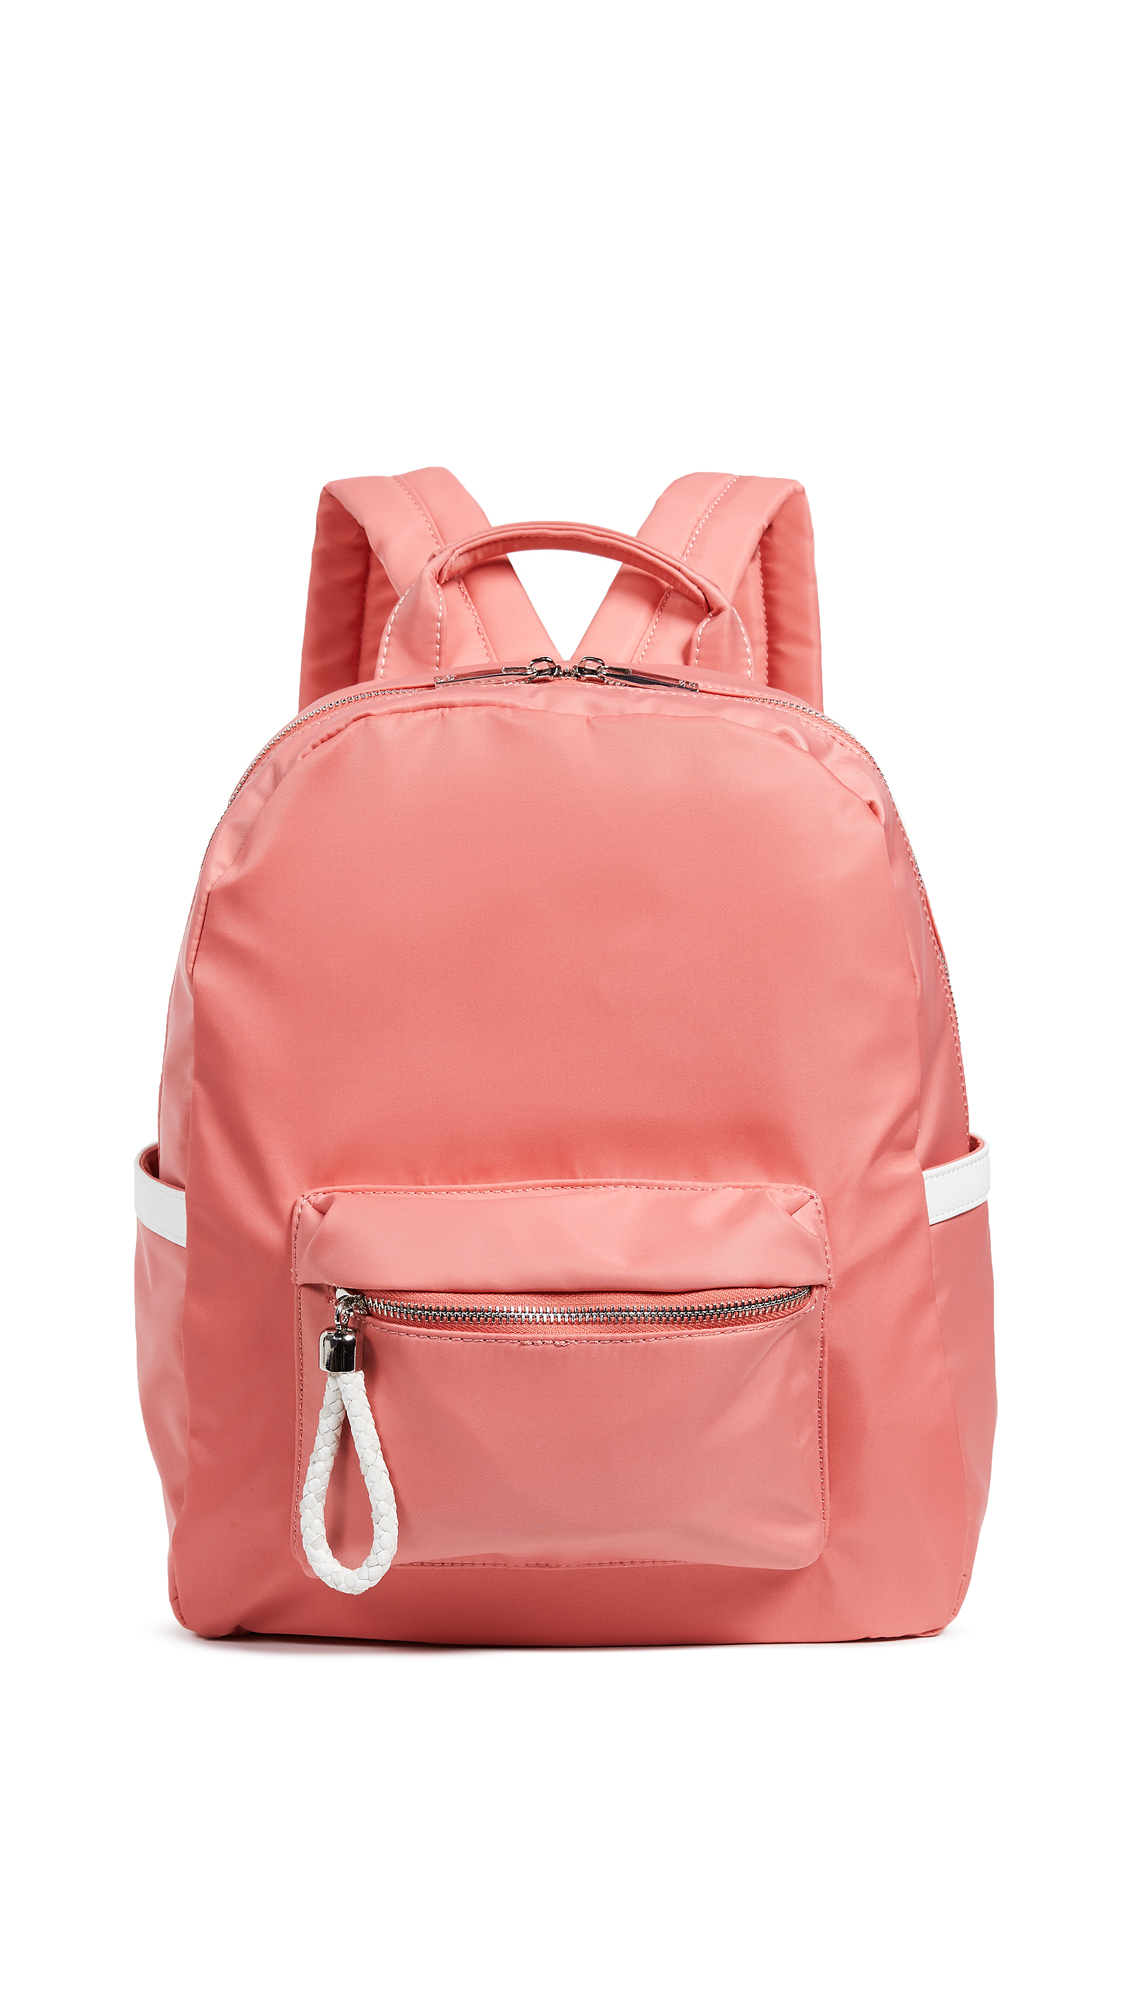 DEUX LUX X Shopbop Backpack in Pink